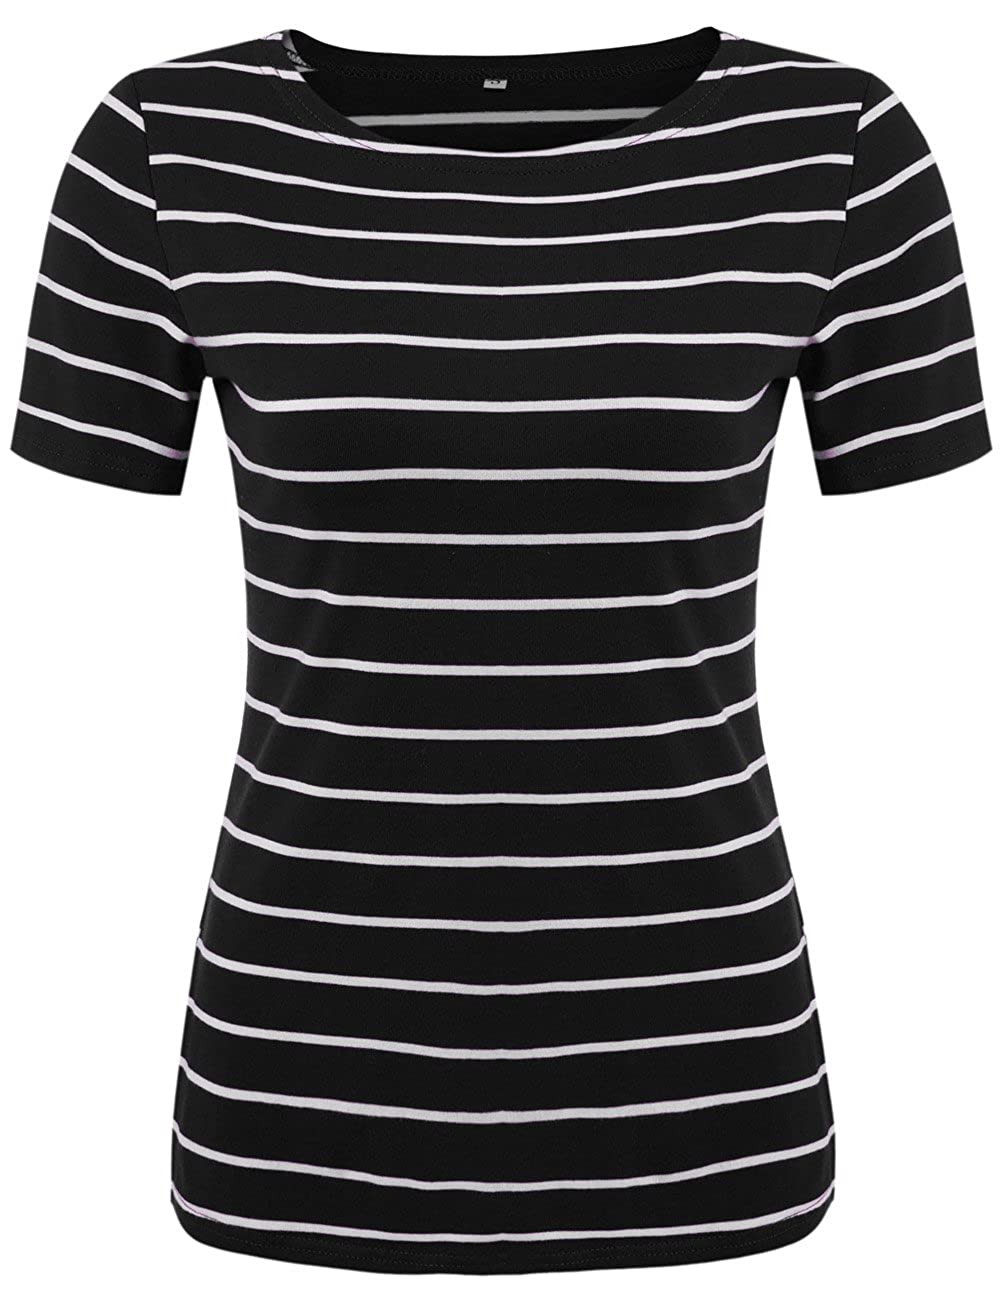 ab32810b Women's Summer Short Sleeve Striped T-Shirt Tee Tops Slim Fit Stripes  Blouses at Amazon Women's Clothing store: